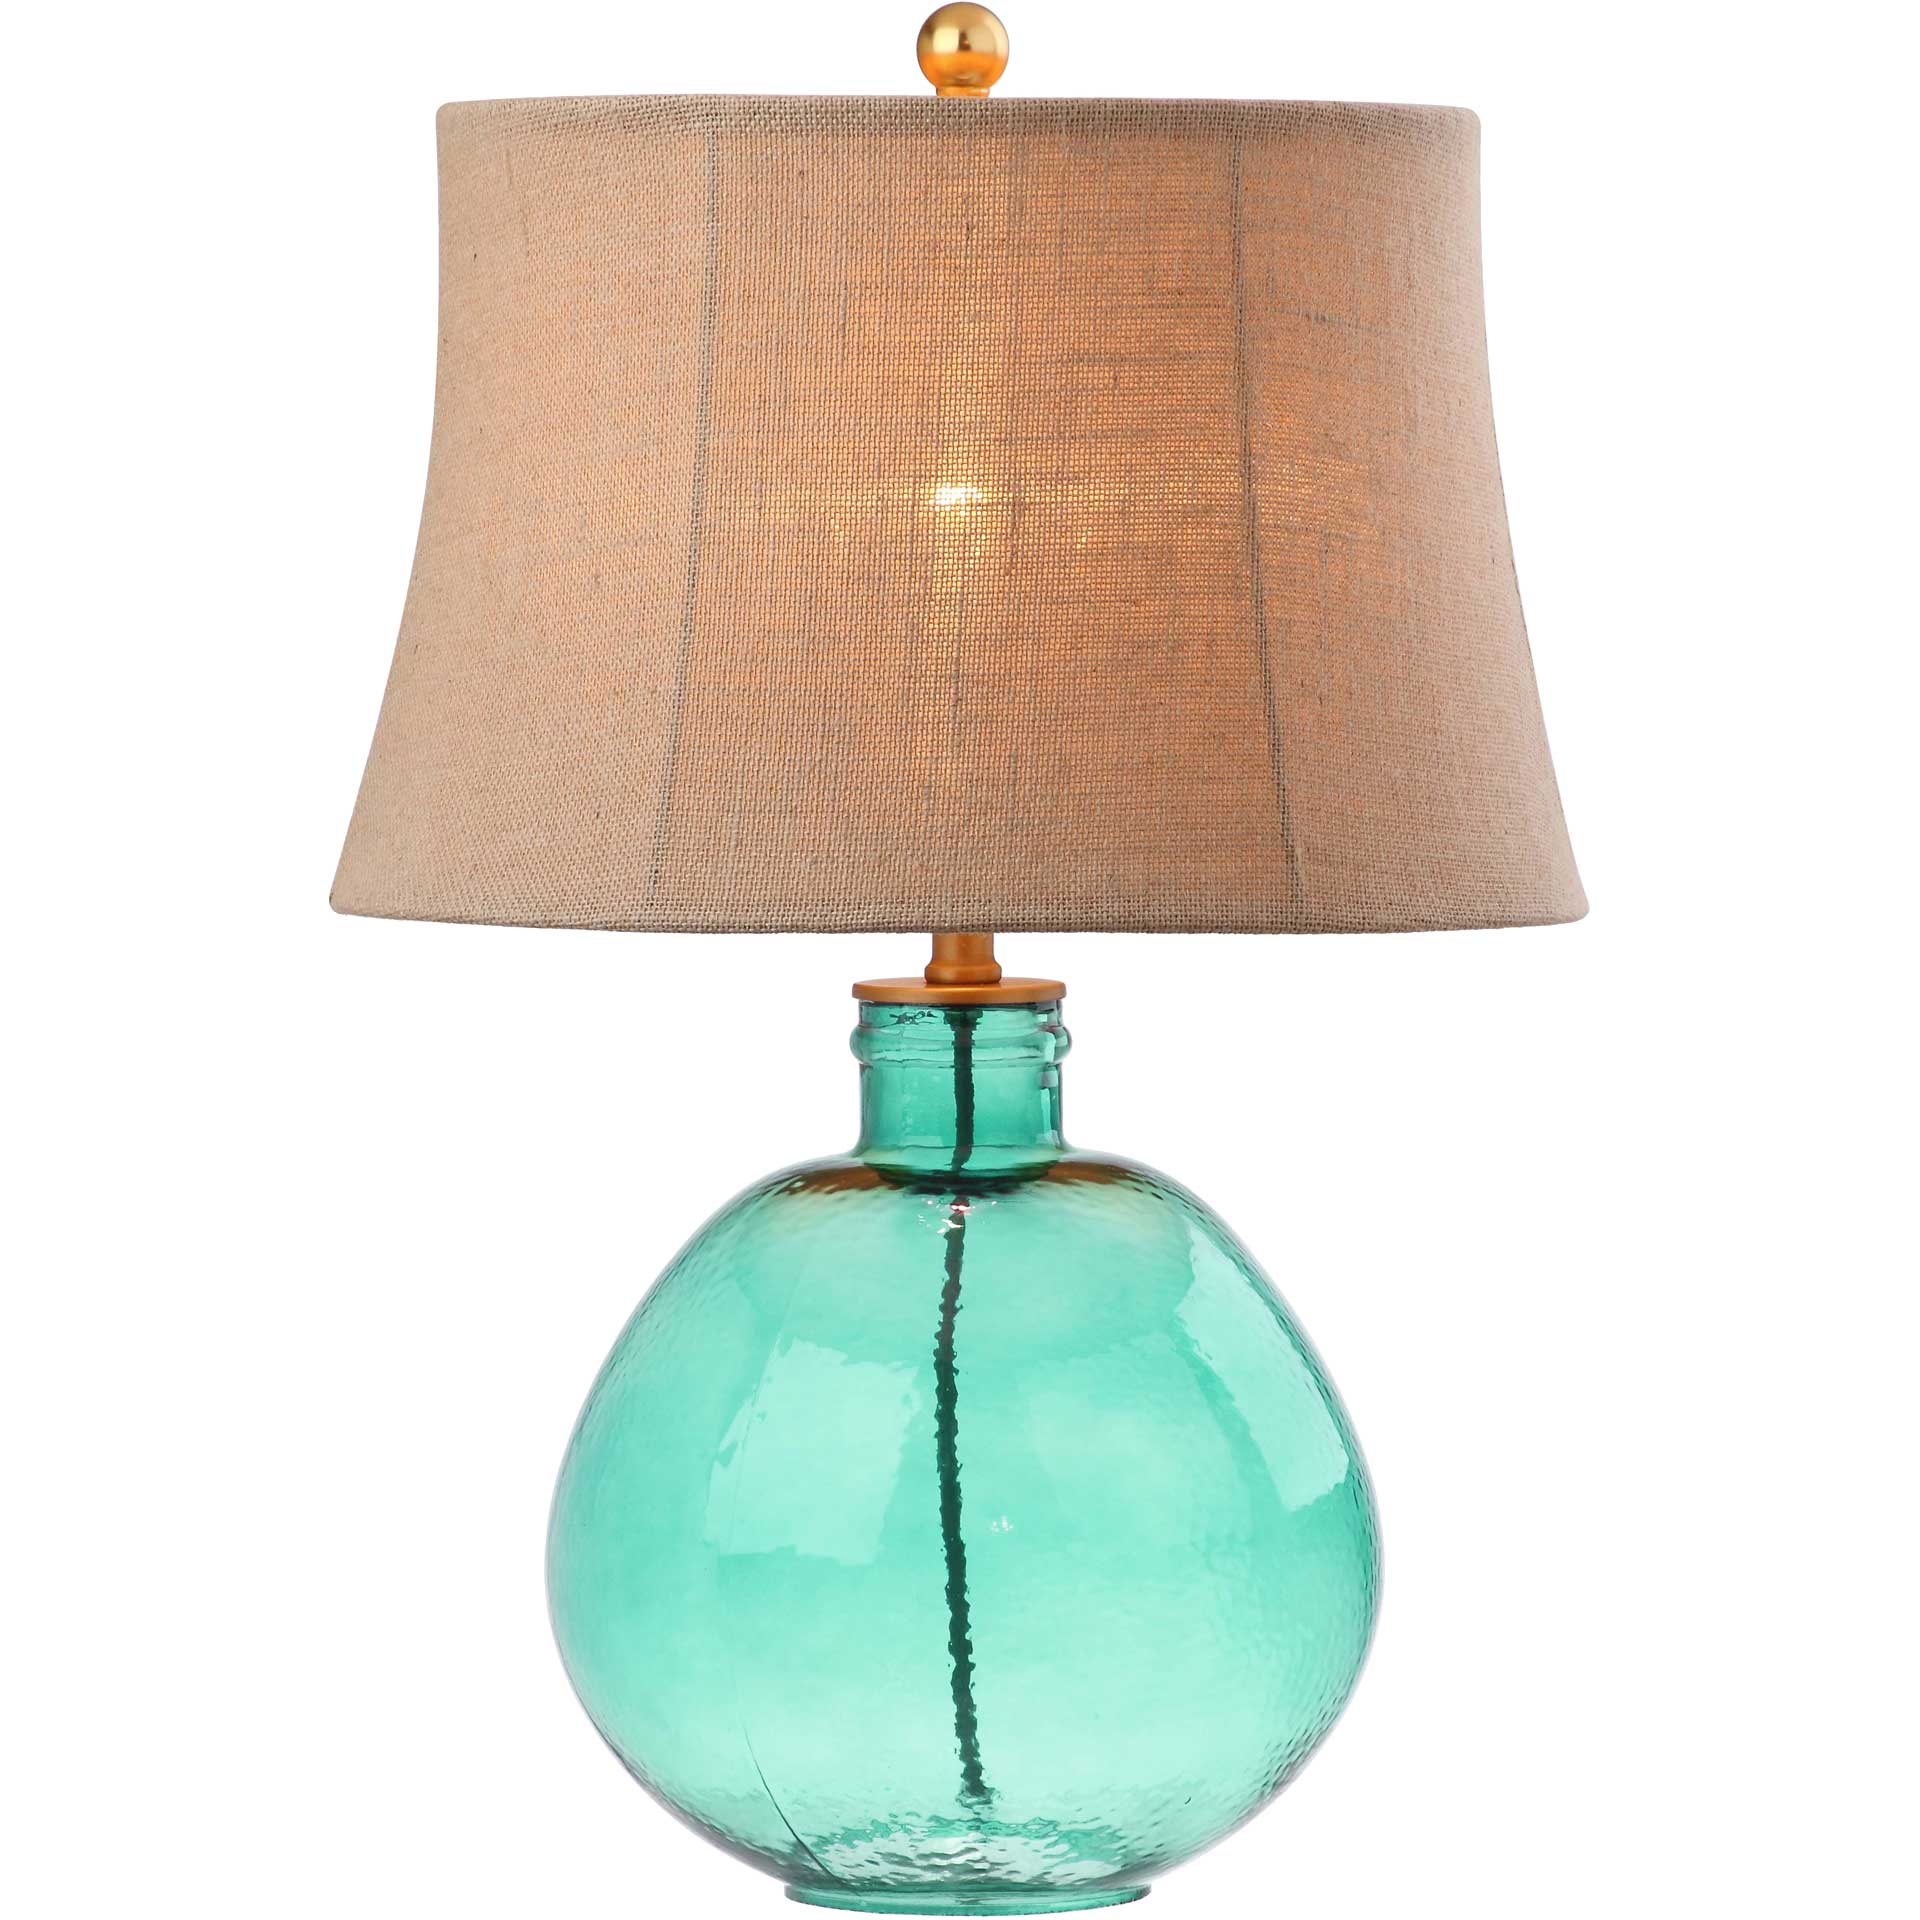 Raven Glass Table Lamp Green